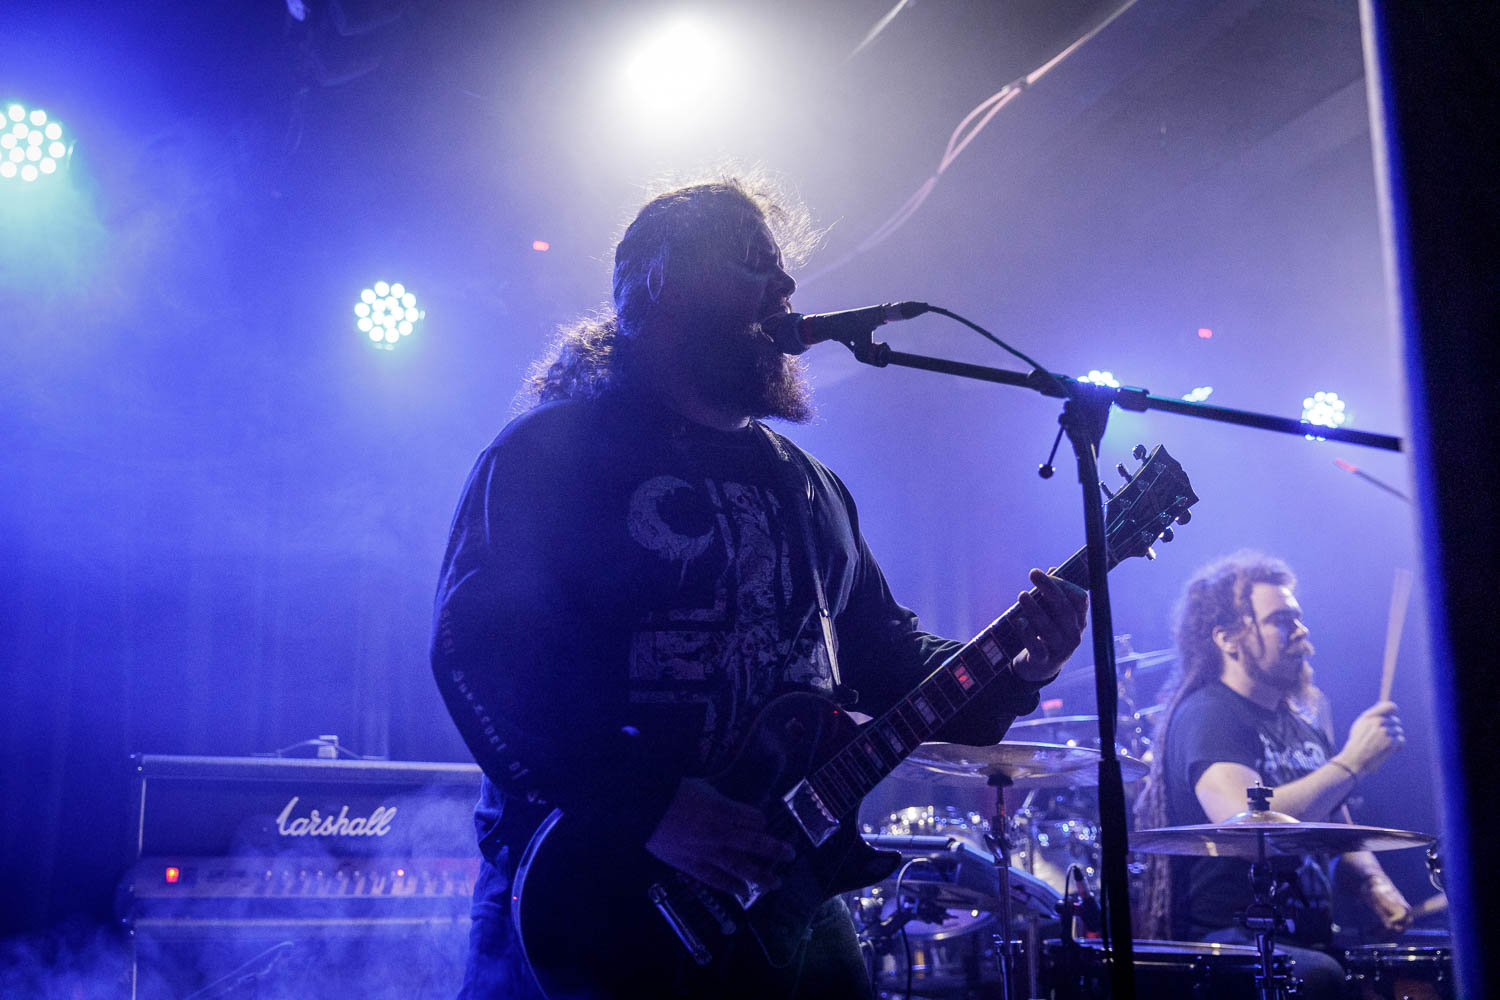 Bast at Rebellion in Manchester on April 26th 2019.